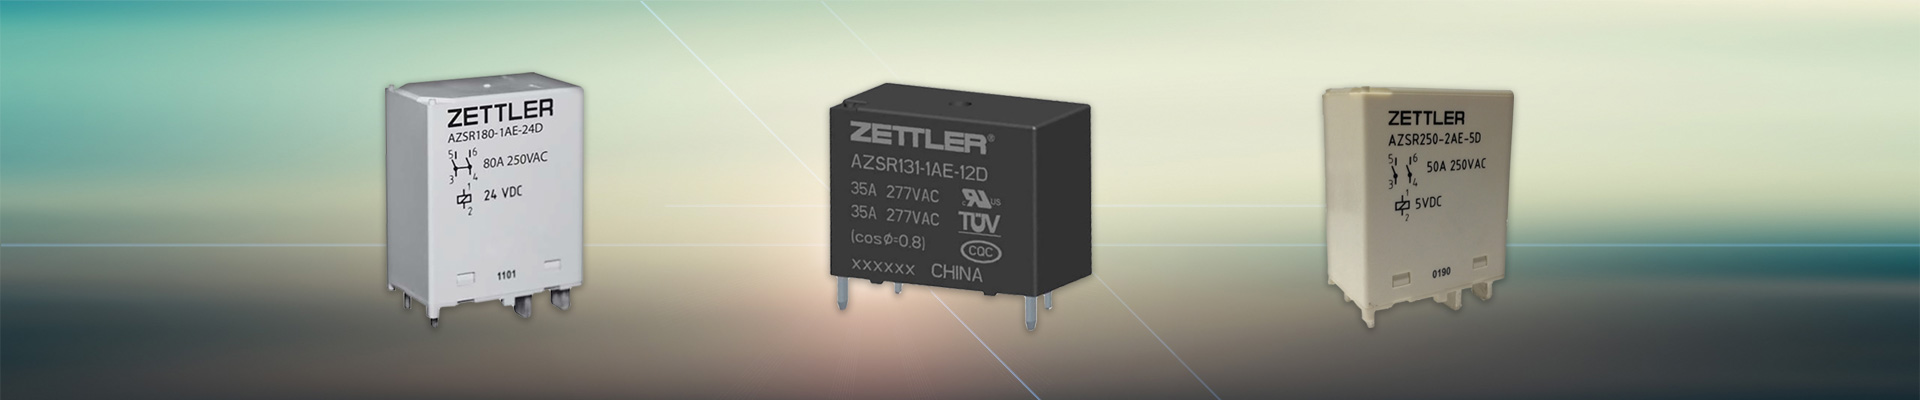 American Zettler, Inc  | Manufacturer of Electromechanical